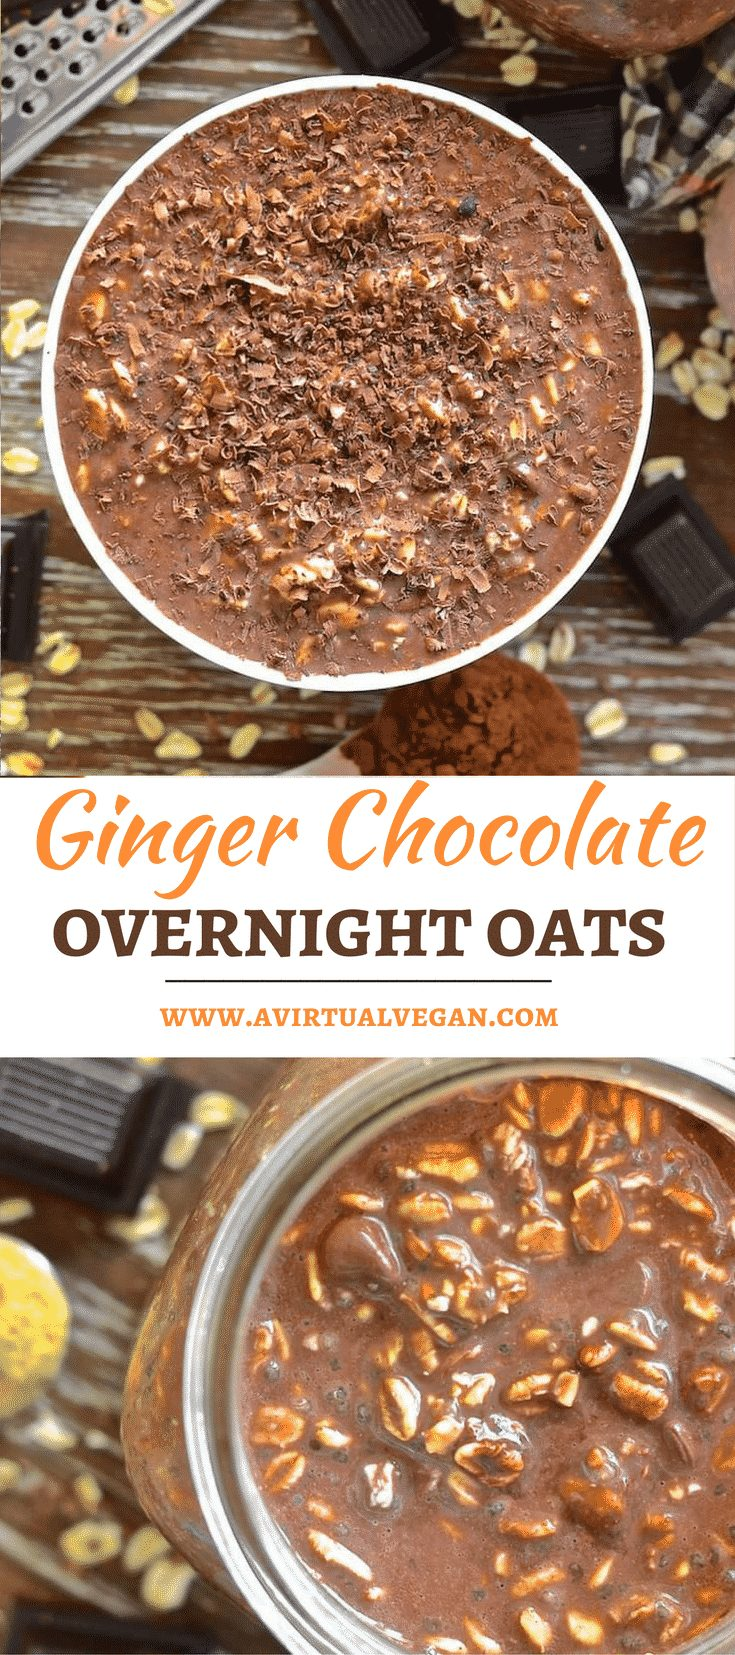 Ginger Chocolate Overnight Oats - Wake up to a jar of chocolatey, oaty goodness with a touch of aromatic ginger warmth. No cooking involved